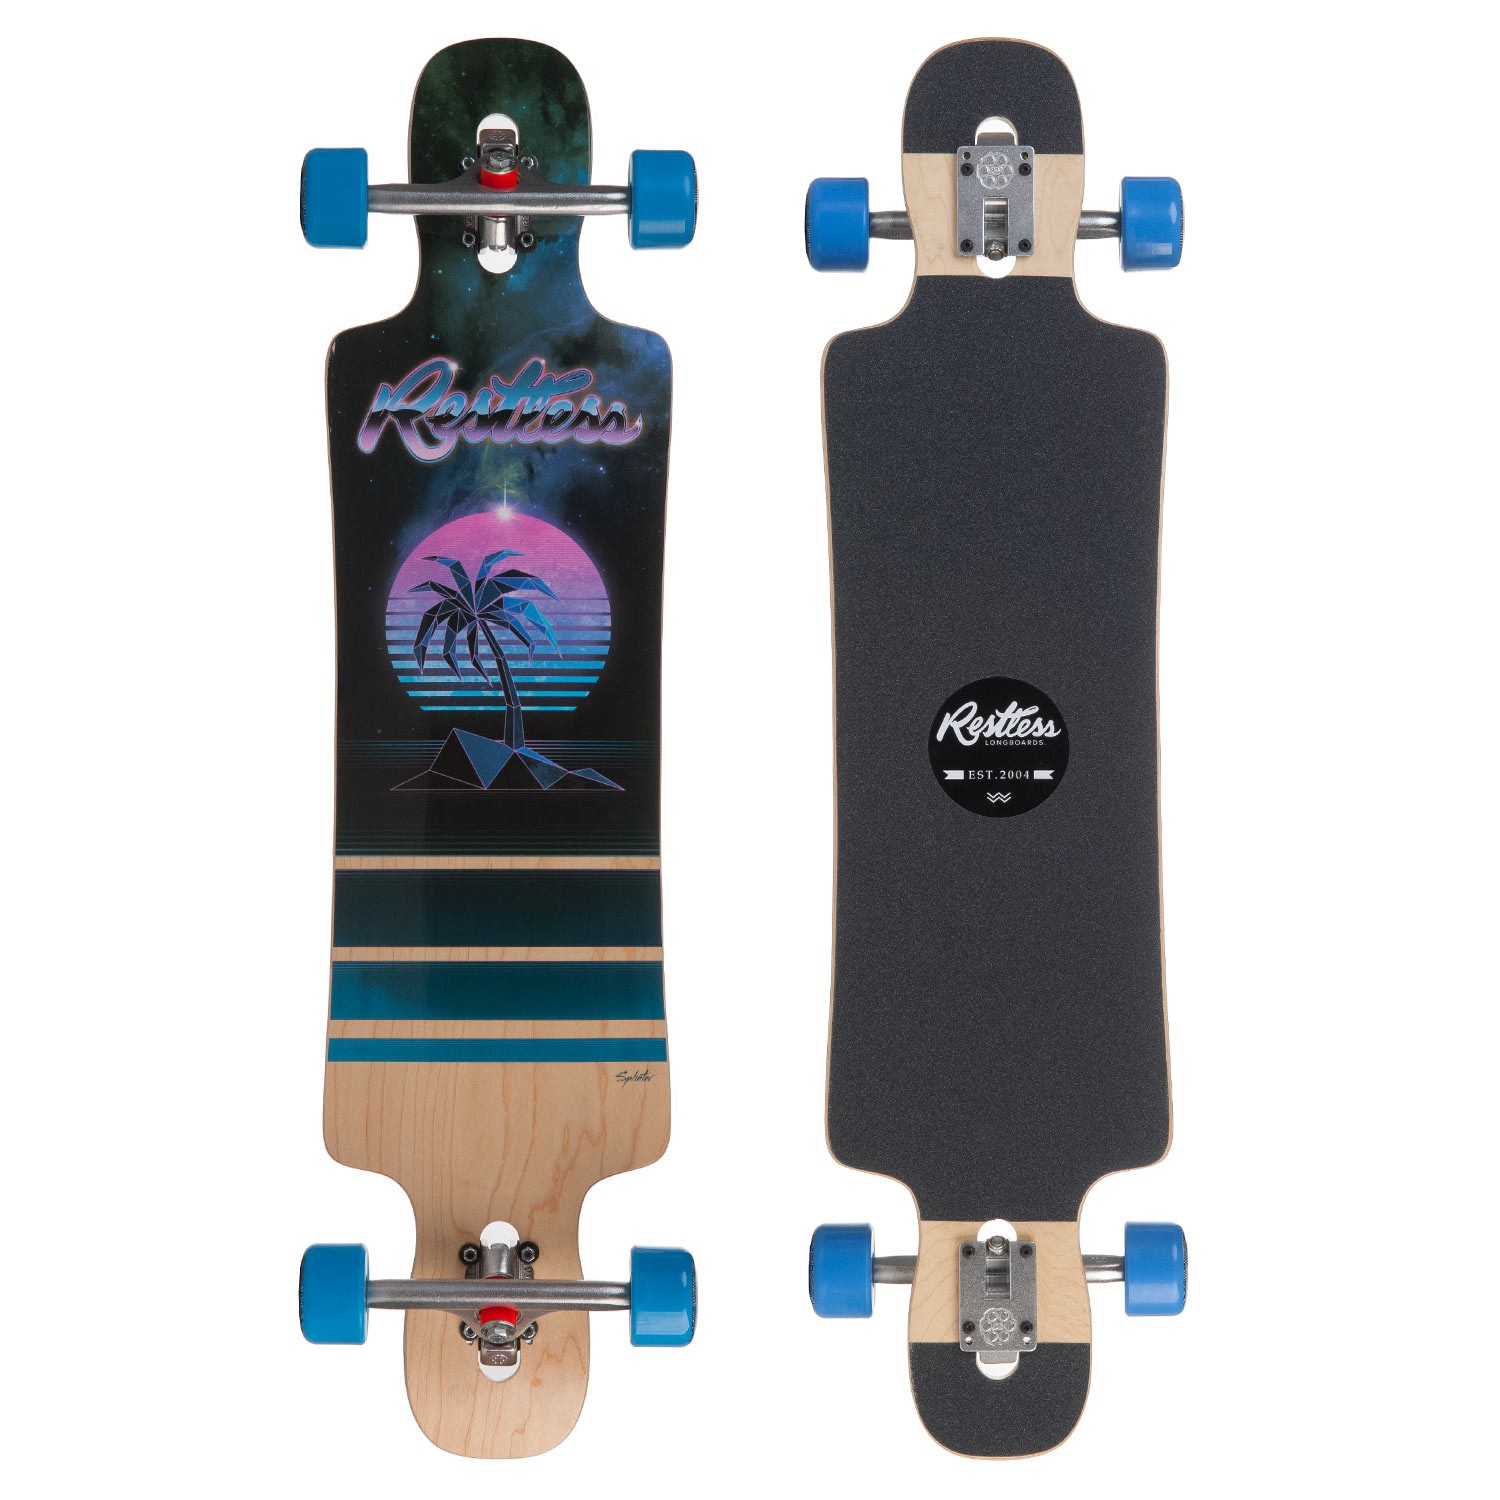 Longboard Restless Splinter 40 palm